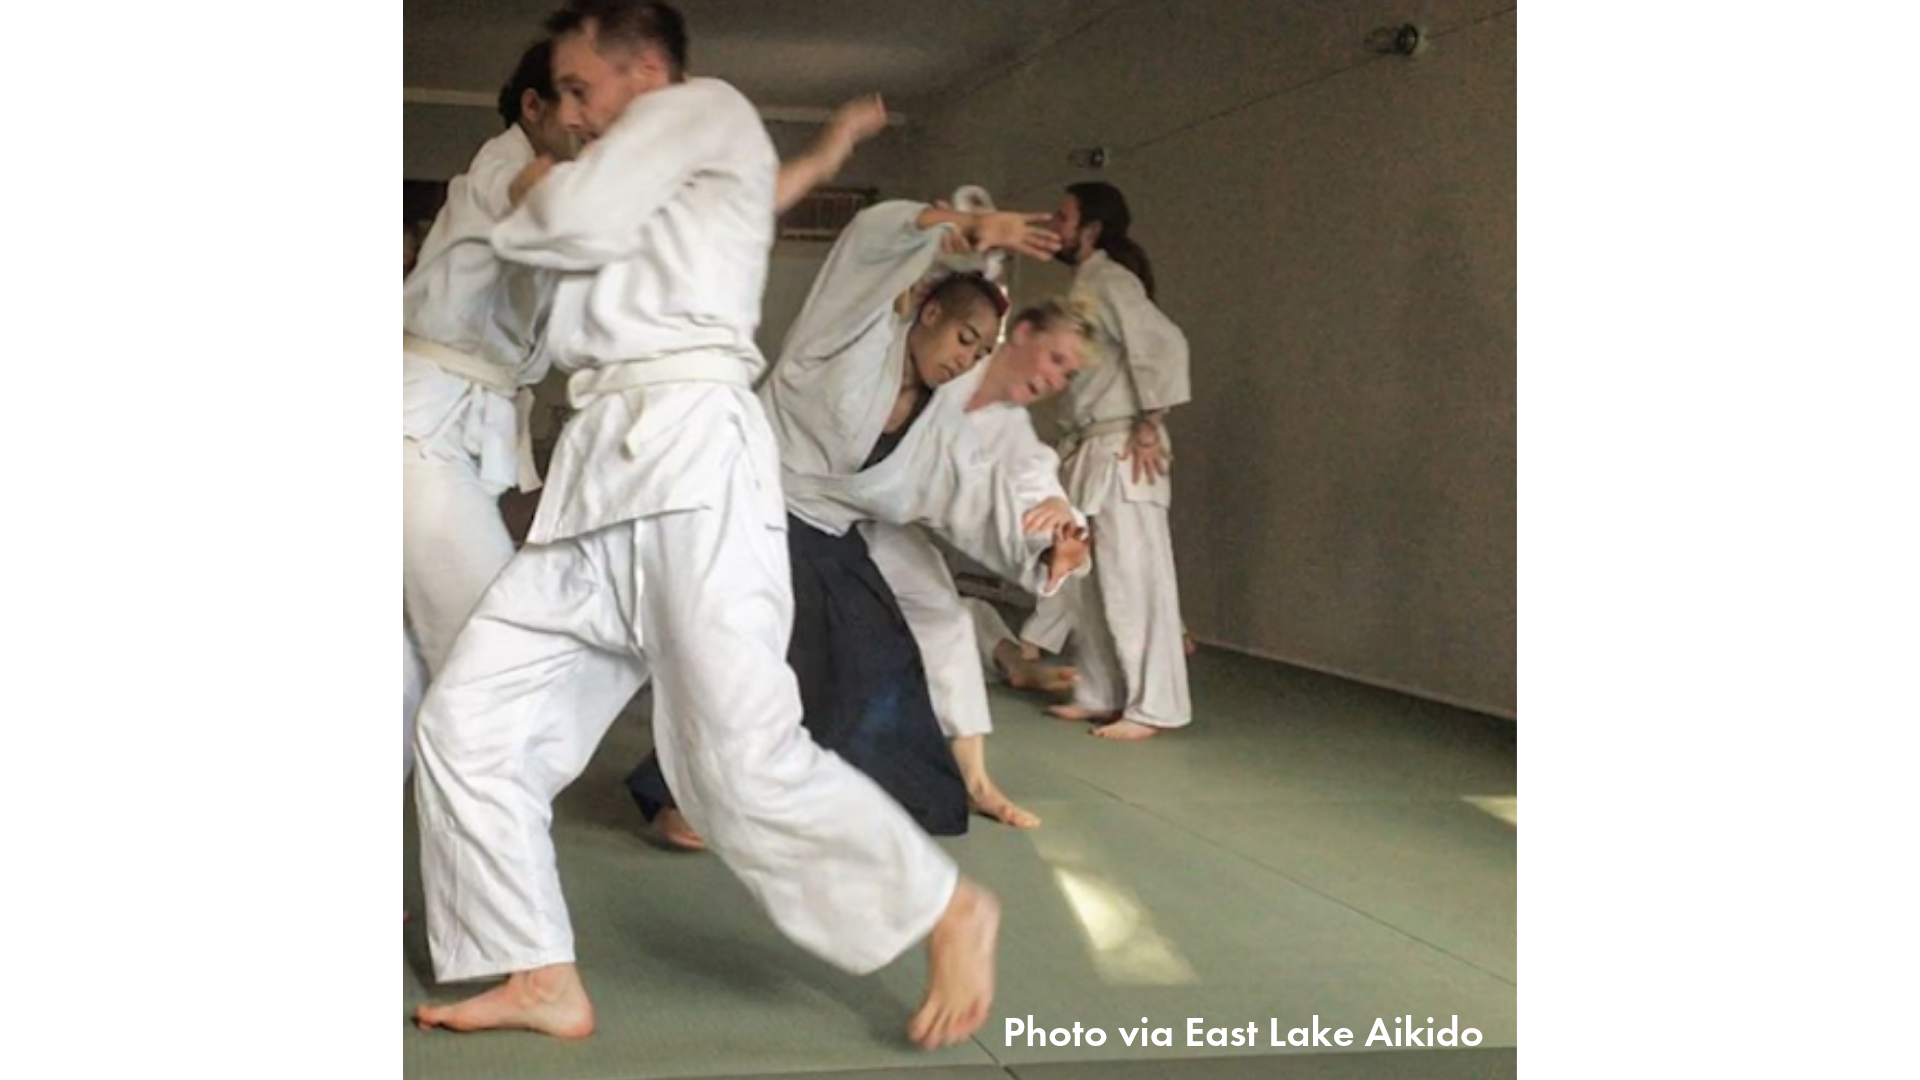 Folks practicing aikido